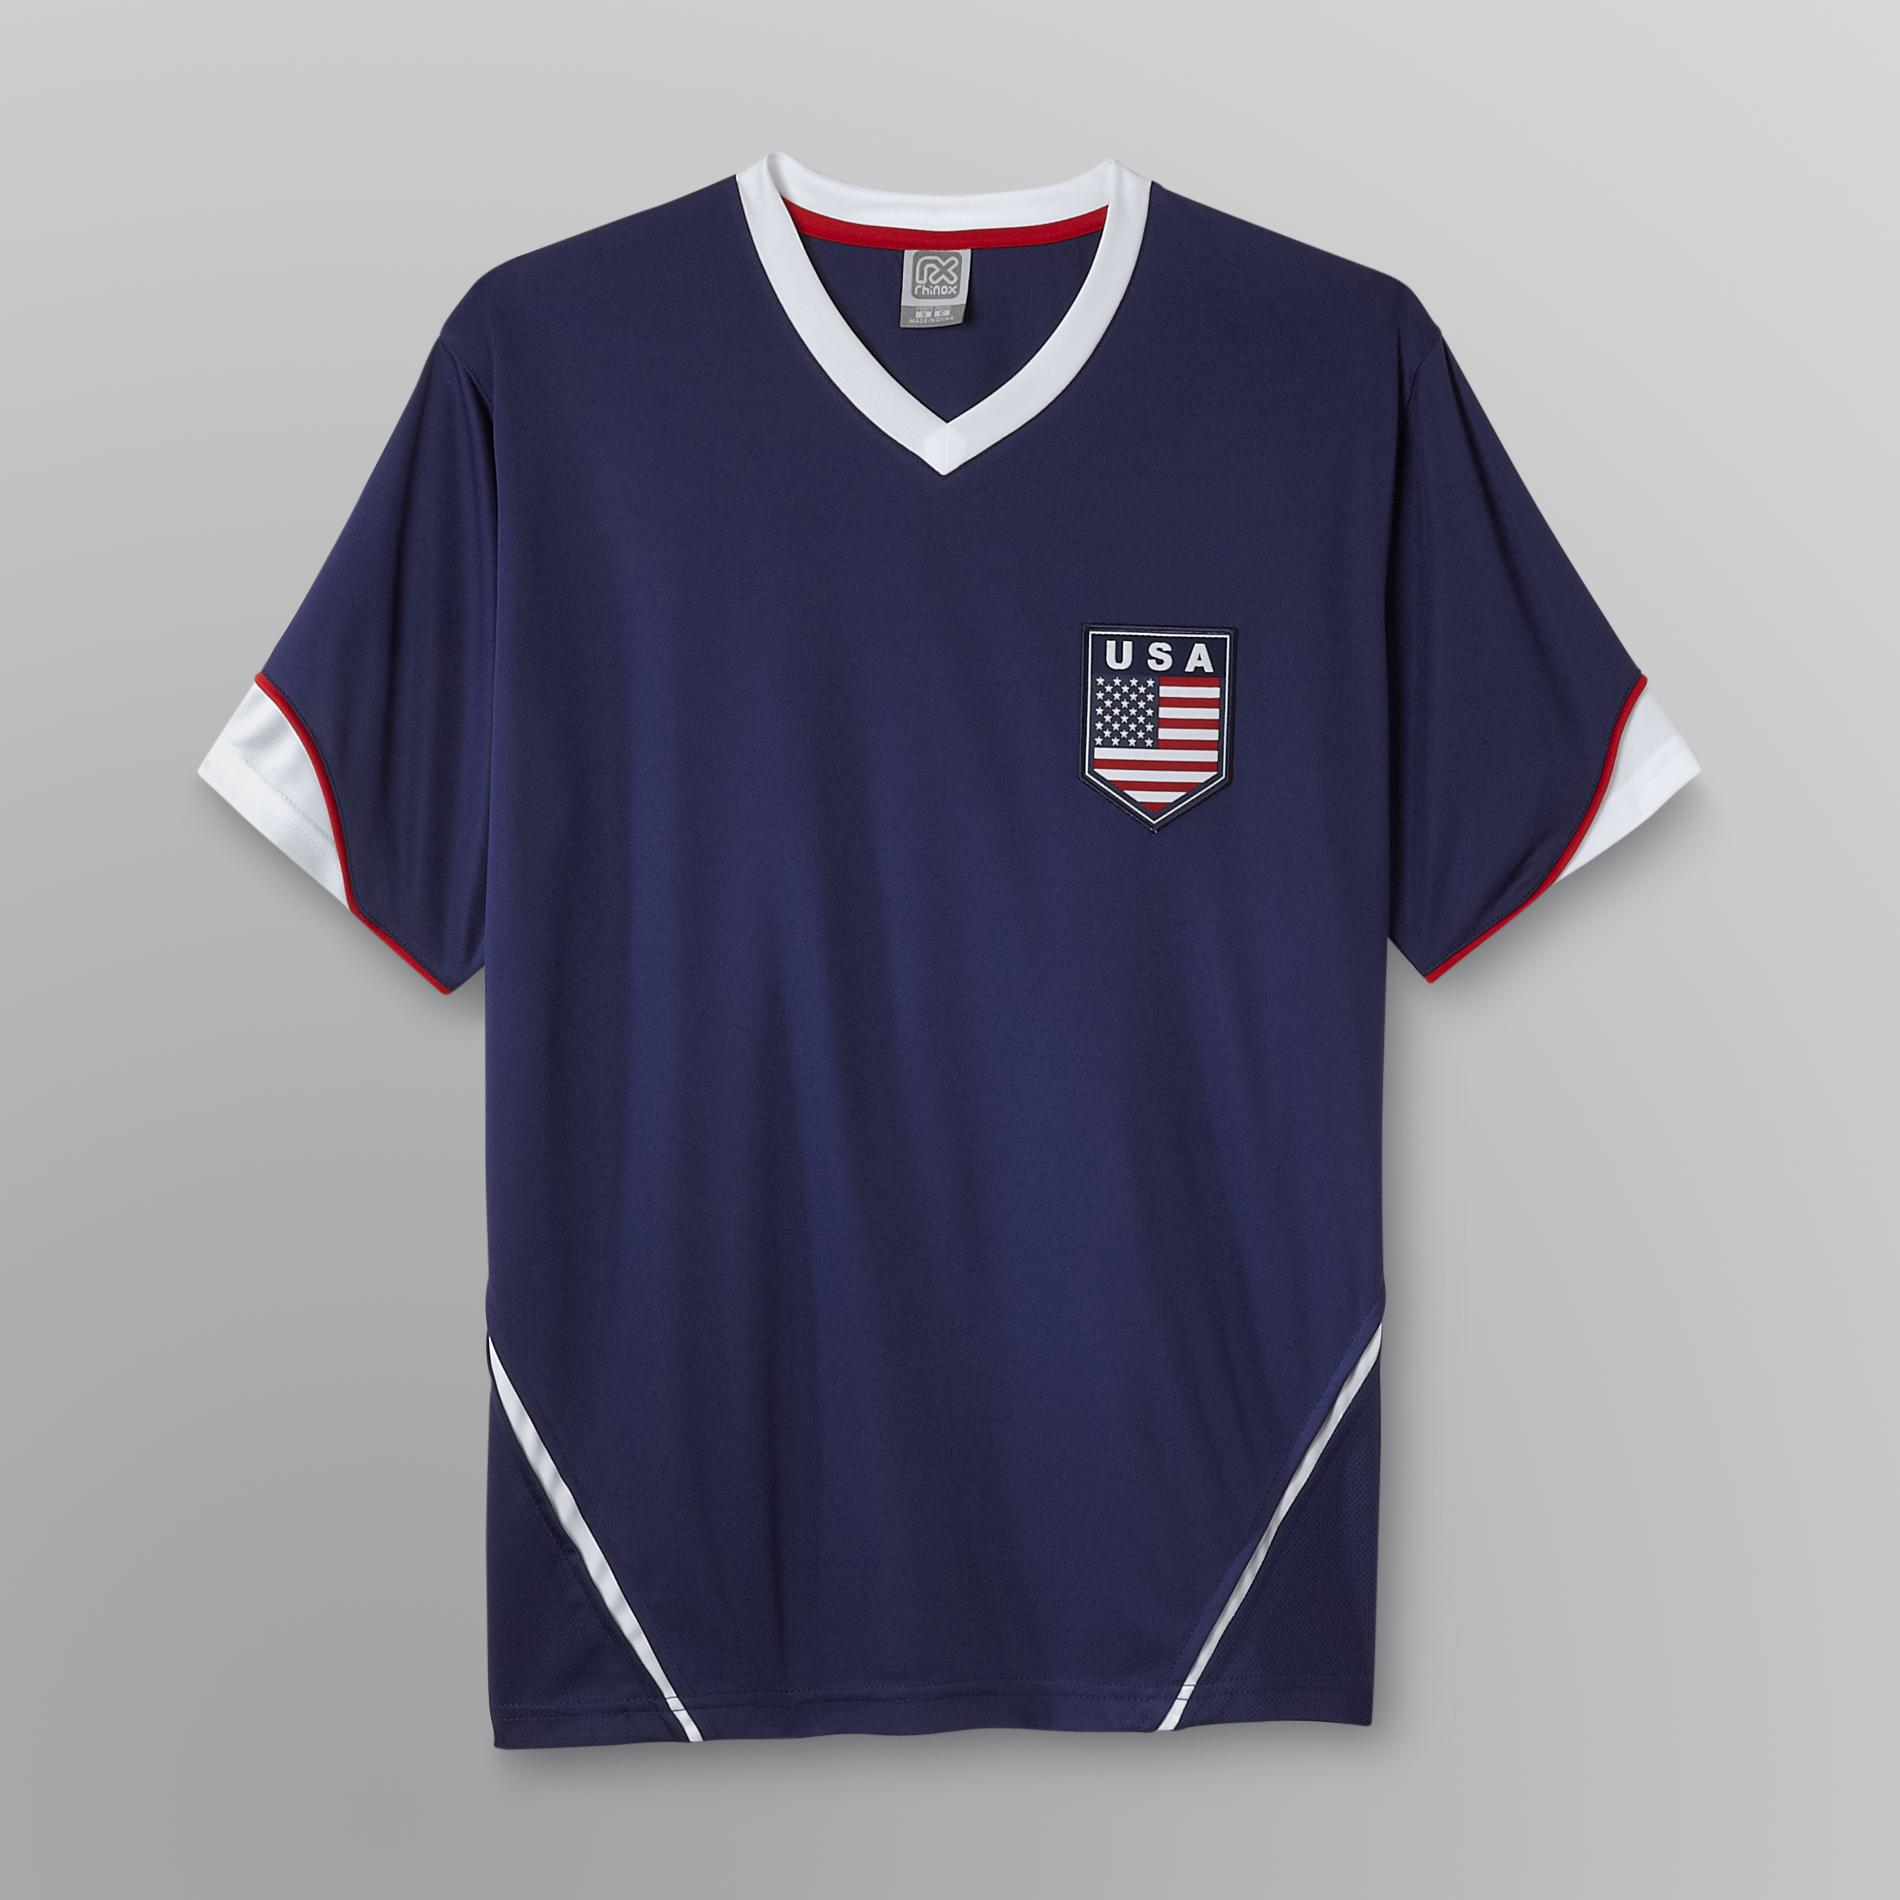 Men's Soccer Shirt - USA at Kmart.com